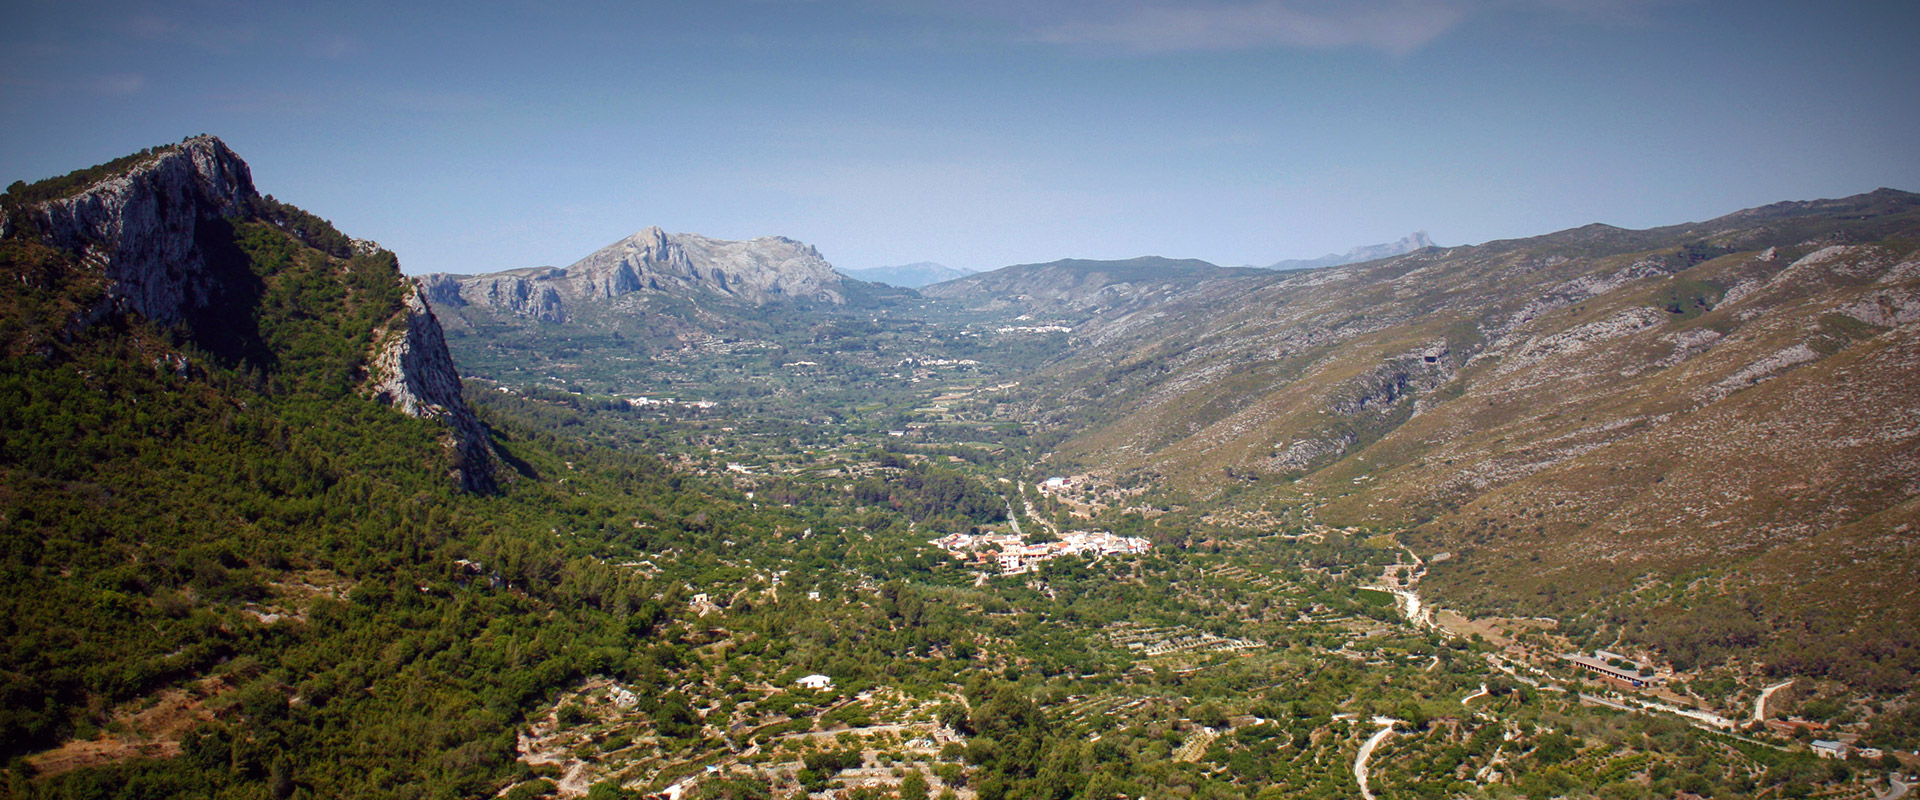 The Valley of Gallinera